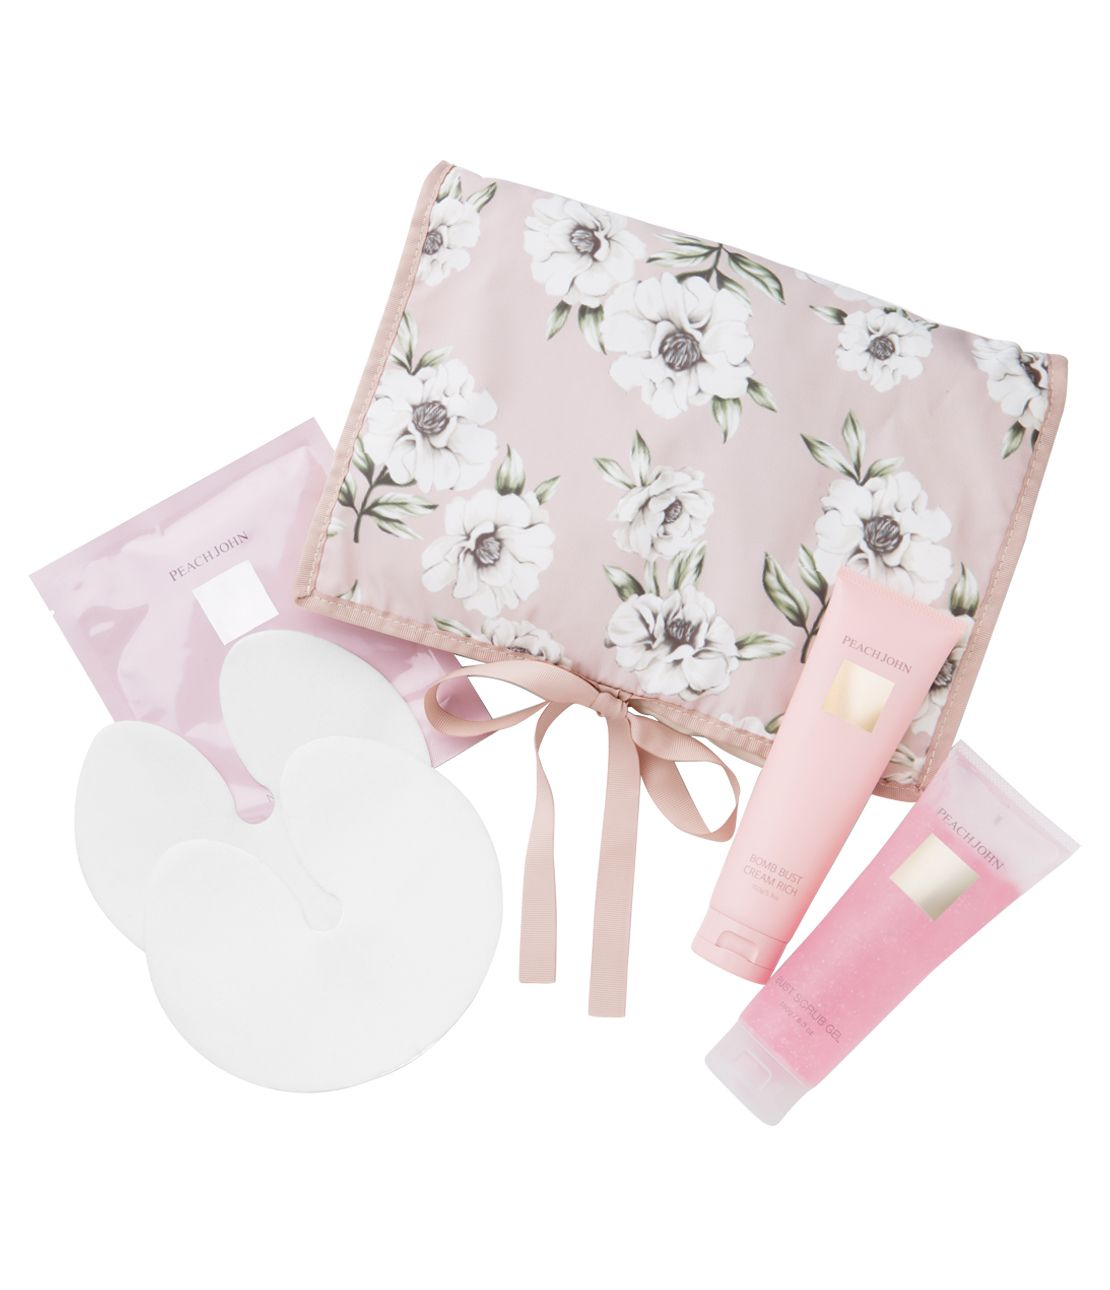 Breast Care Set